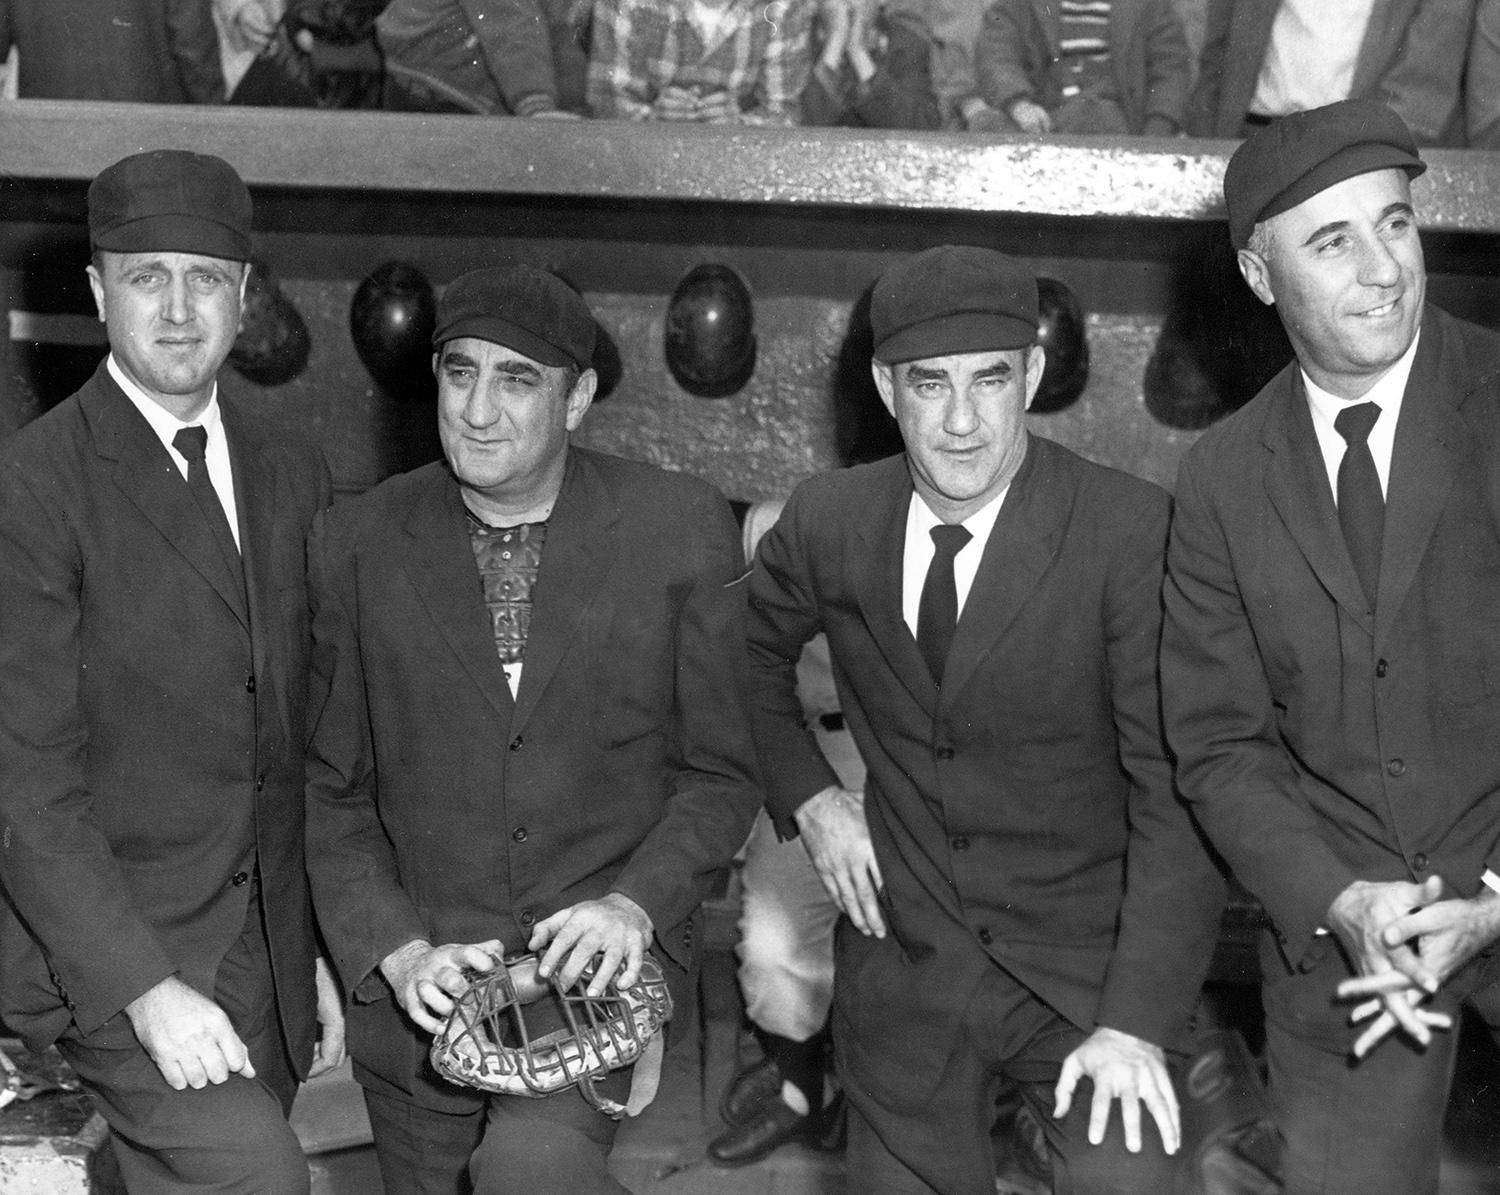 Augie Donatelli (far right) pictured with umpires Ed Sudol, Vic Delmore and Vinnie Smith. Smith served in the Navy in World War II, while Donatelli served in the Air Force. (National Baseball Hall of Fame)